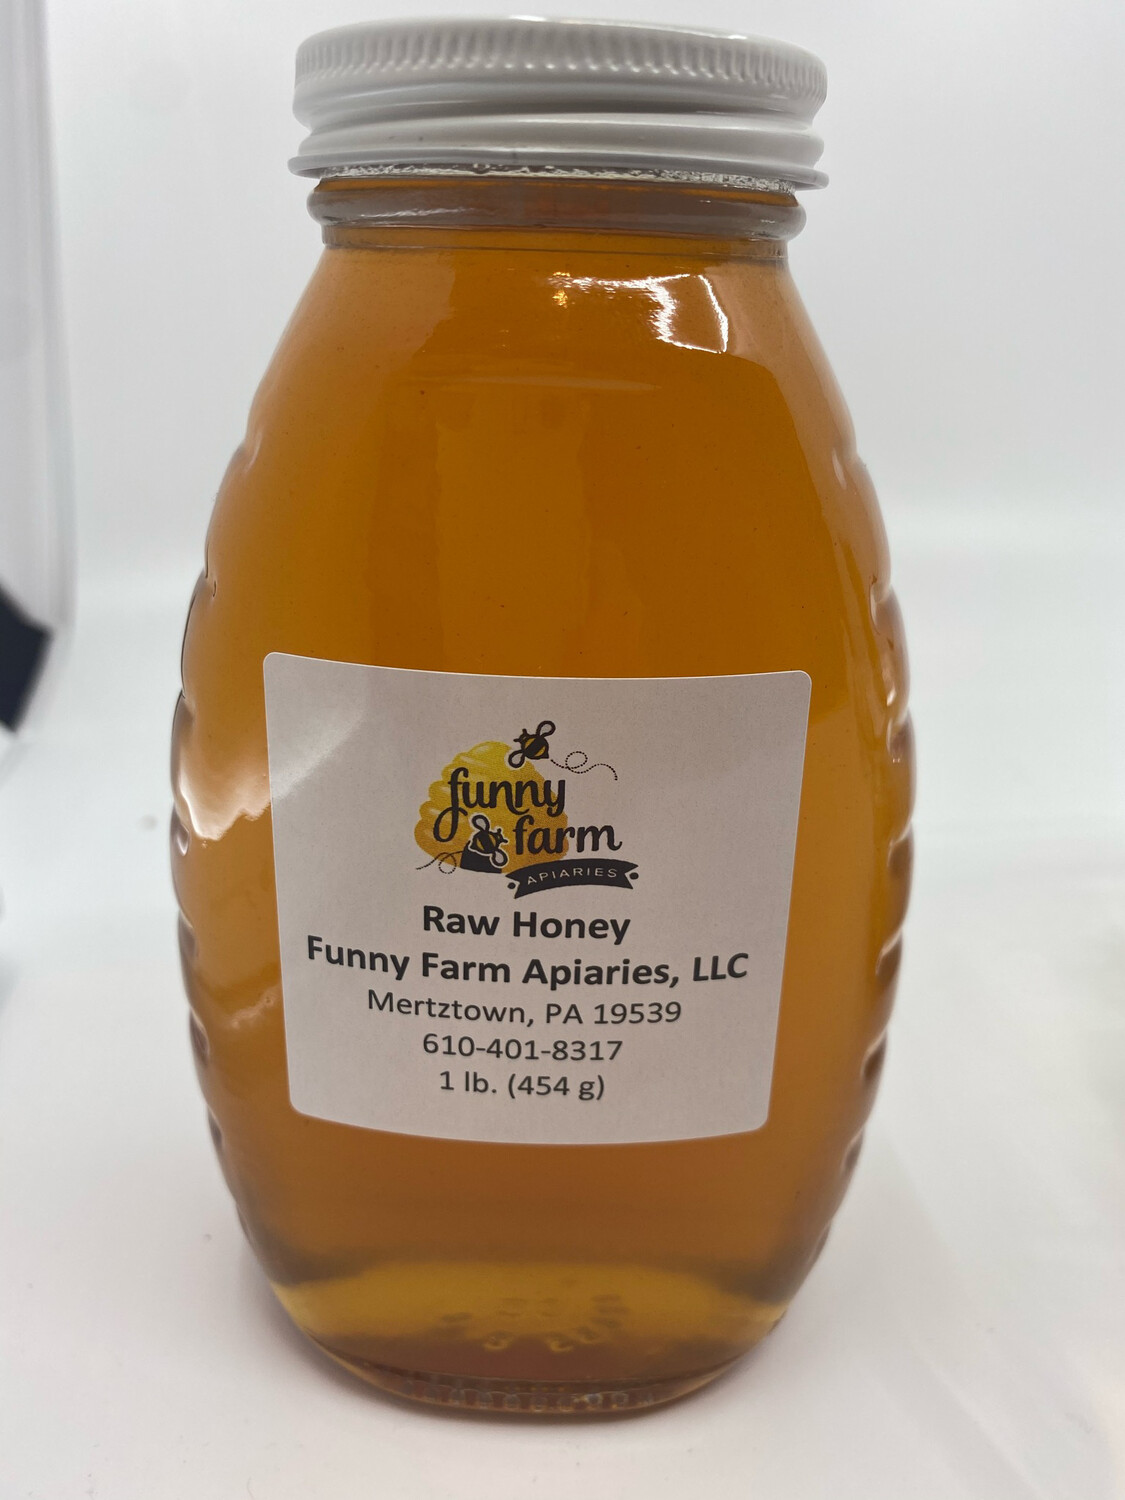 Funny Farm Apiaries PP raw honey 1 lb.